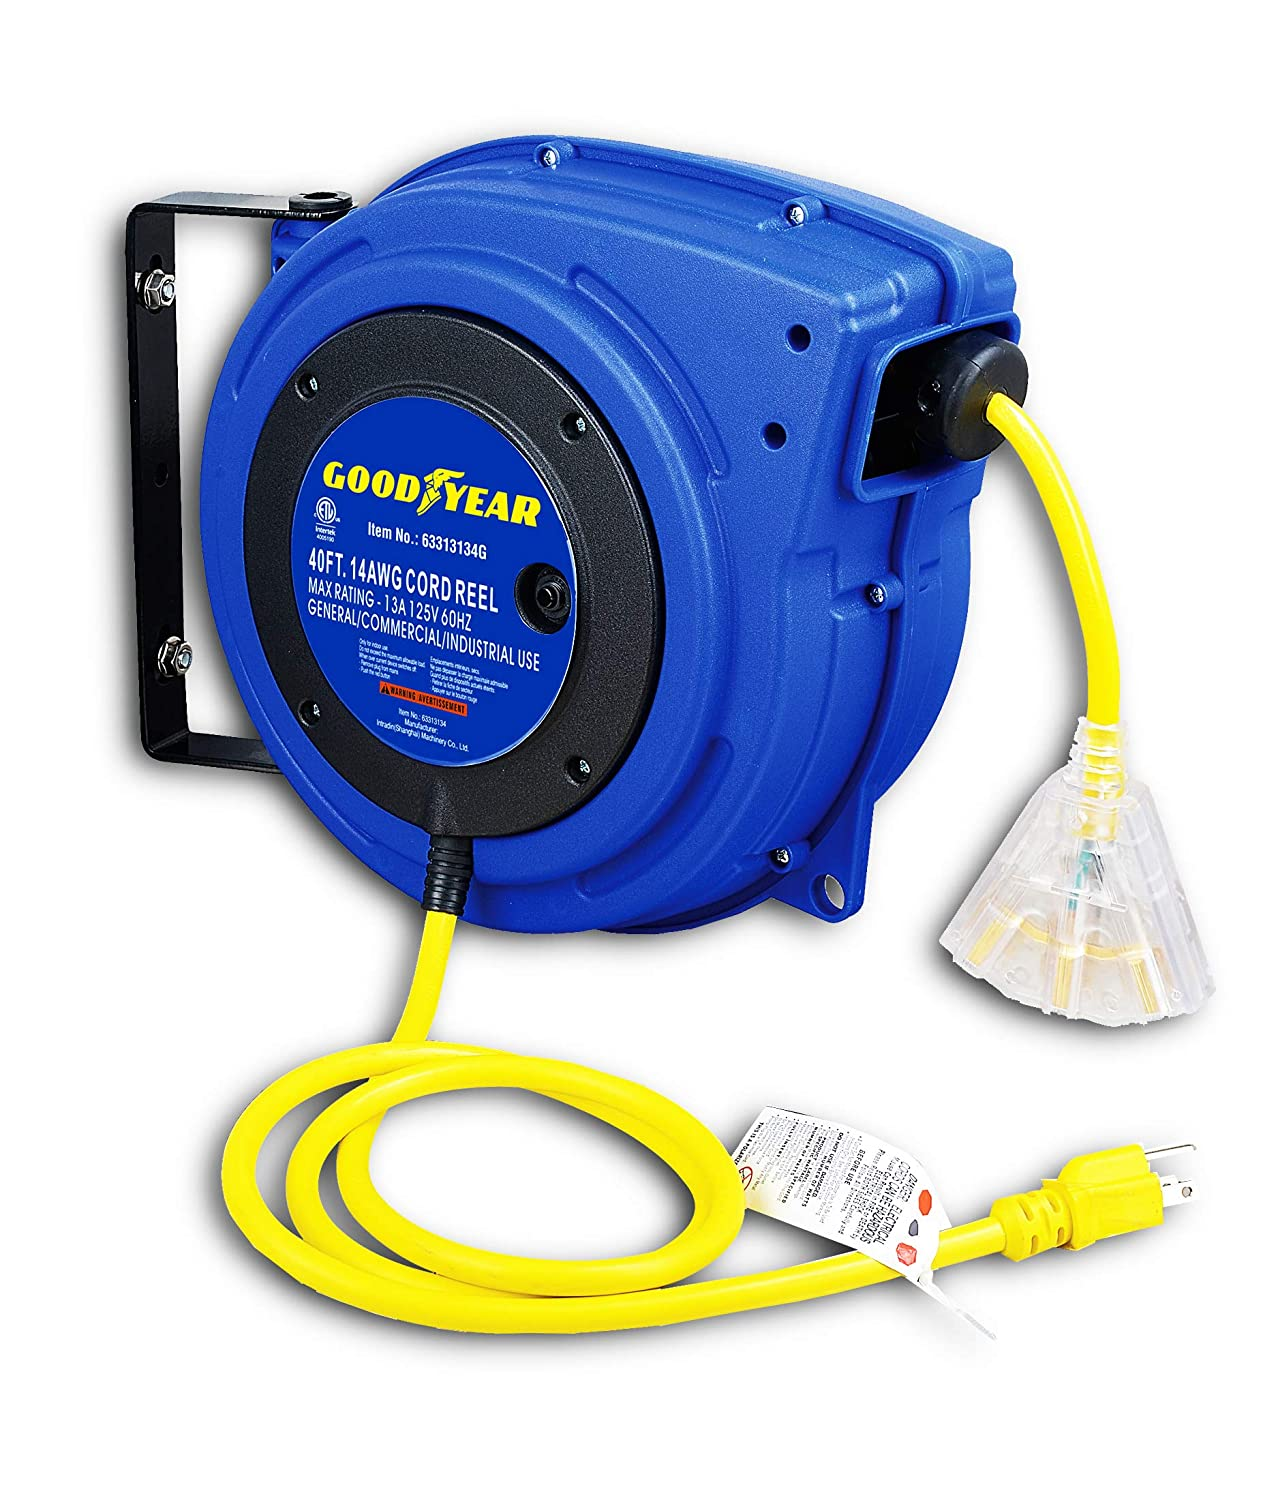 GOODYEAR Rapid rise Extension Cord Reel Extra Max 74% OFF Long 3C 14AWG ft Tr 40 SJTOW